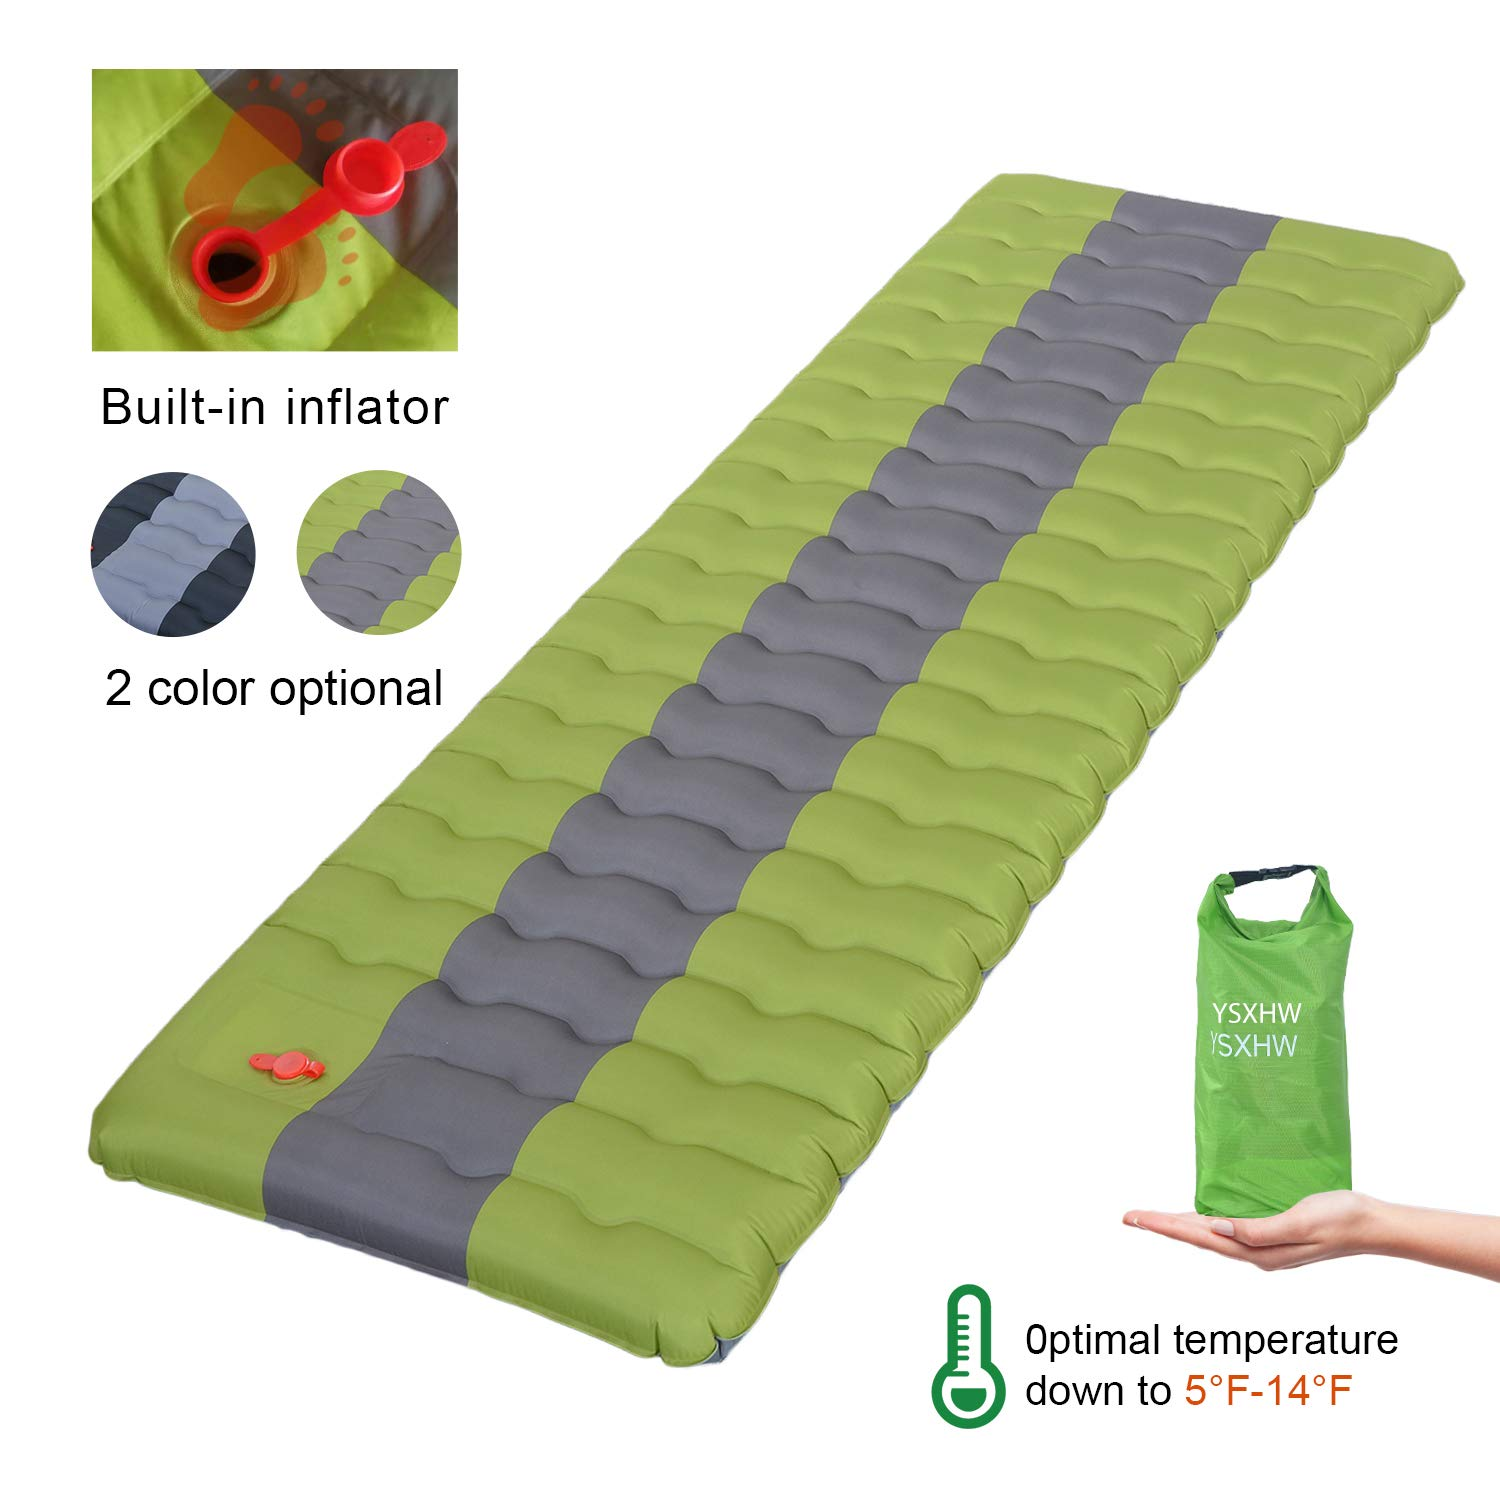 YSXHW Self Inflating Camping Pads Thick 4.7 Inch Lightweight Camping Sleeping Pad Ultralight,Compact,Waterproof PVC Inflatable Mat for Tent, Hiking and Backpacking - Green Built in Pump by YSXHW